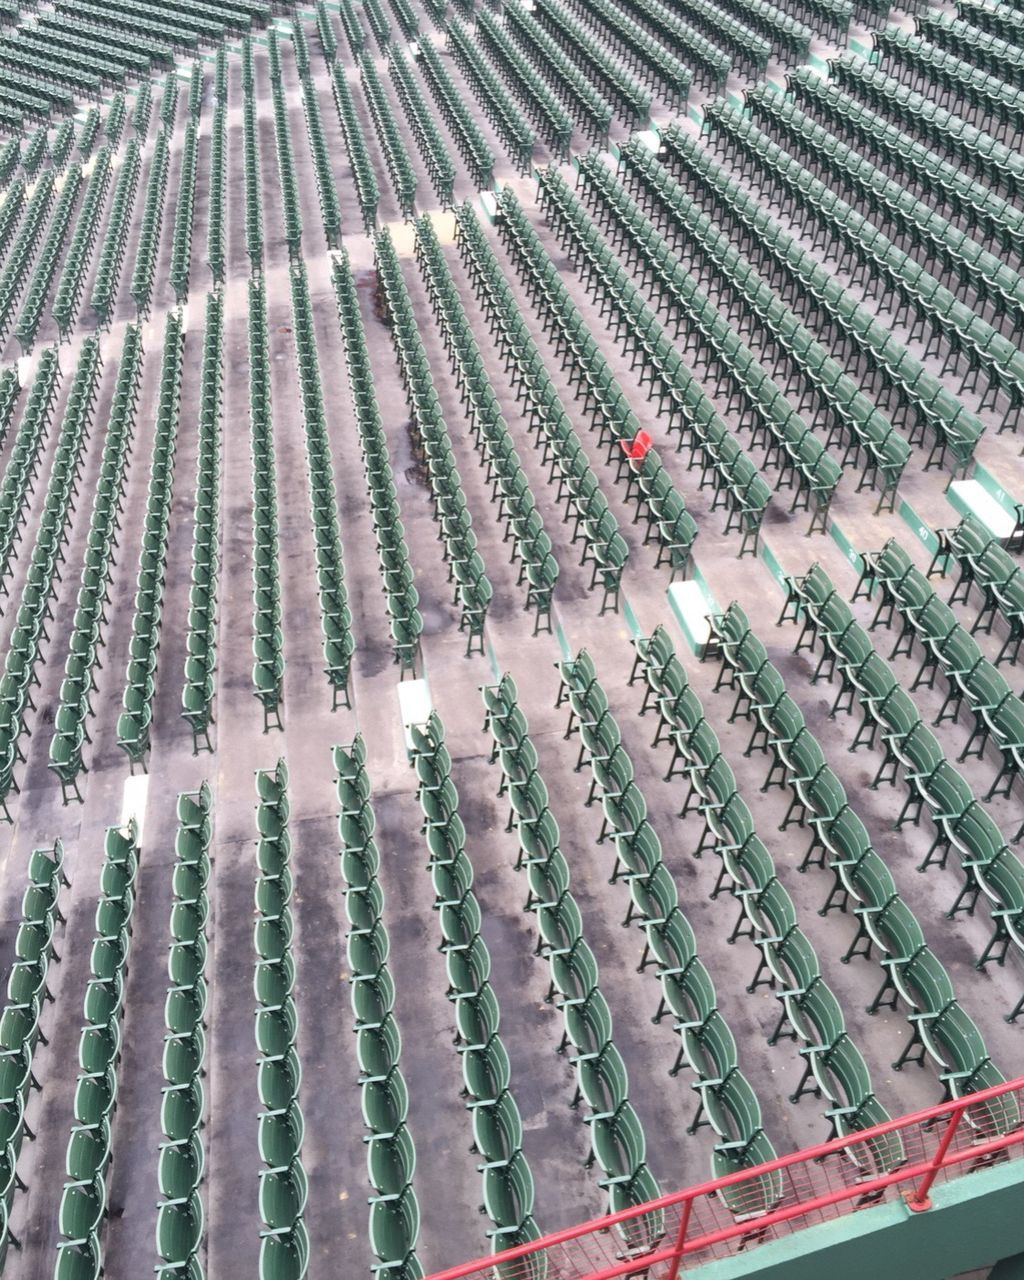 High Angle View Of Green Chairs In Rows